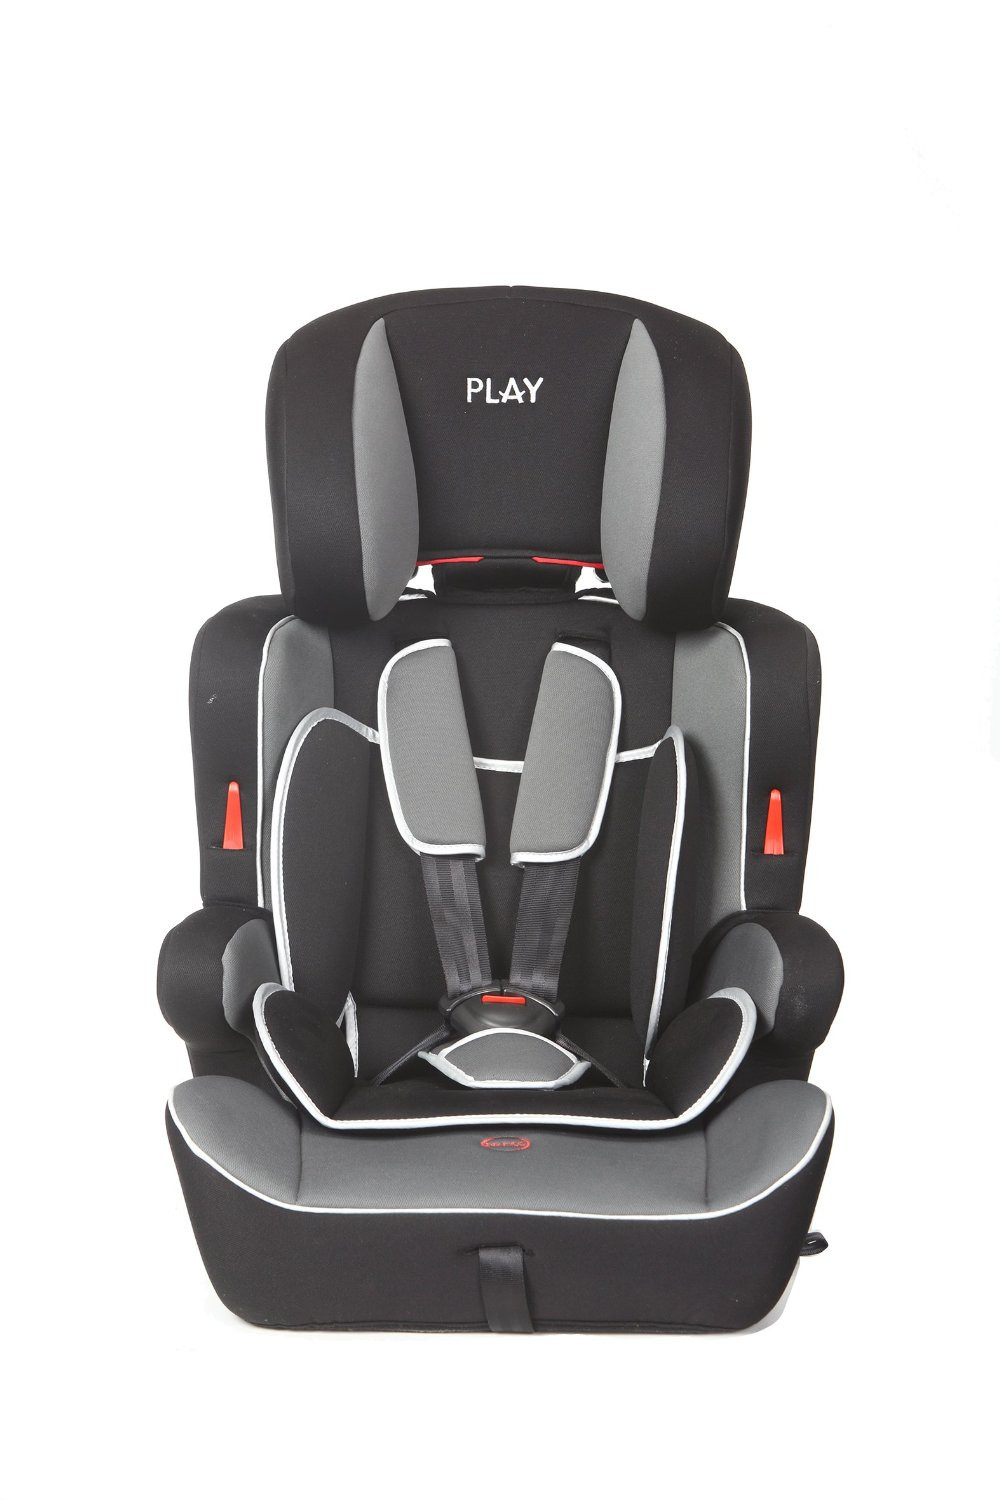 Silla de coche play safe ten grupo 1 2 3 casualplay for Silla de coche grupo 2 3